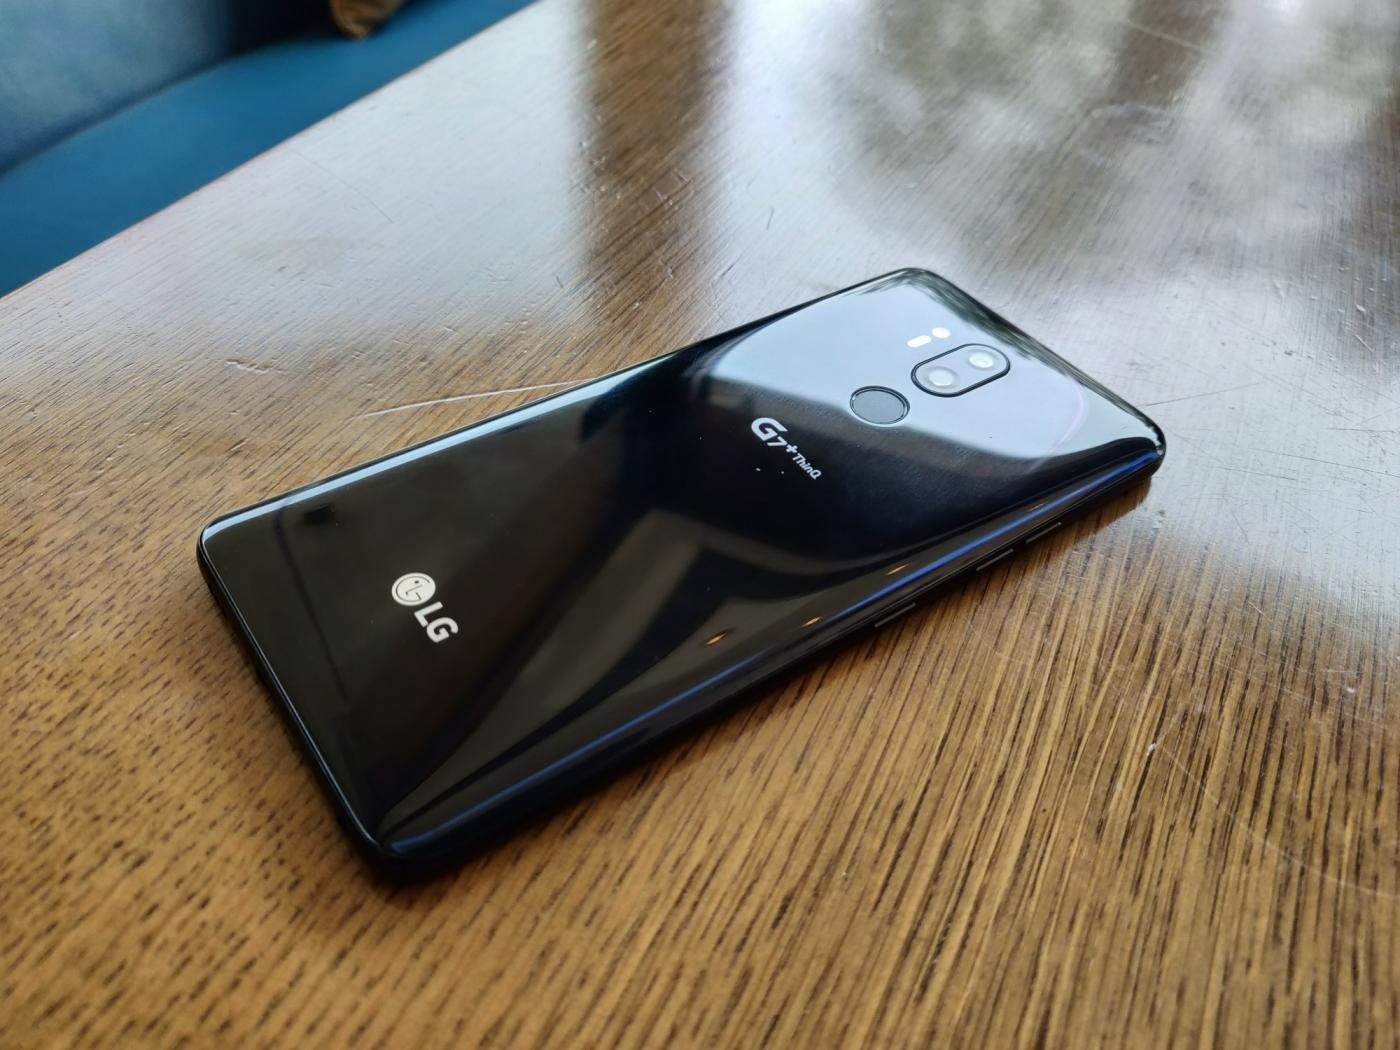 LG has cleverly pitted the G7+ ThinQ in the sub-Rs 40,000 price segment that competes with the likes of the affordable flagships, such as the OnePlus 6 and the Asus Zenfone 5Z. by .